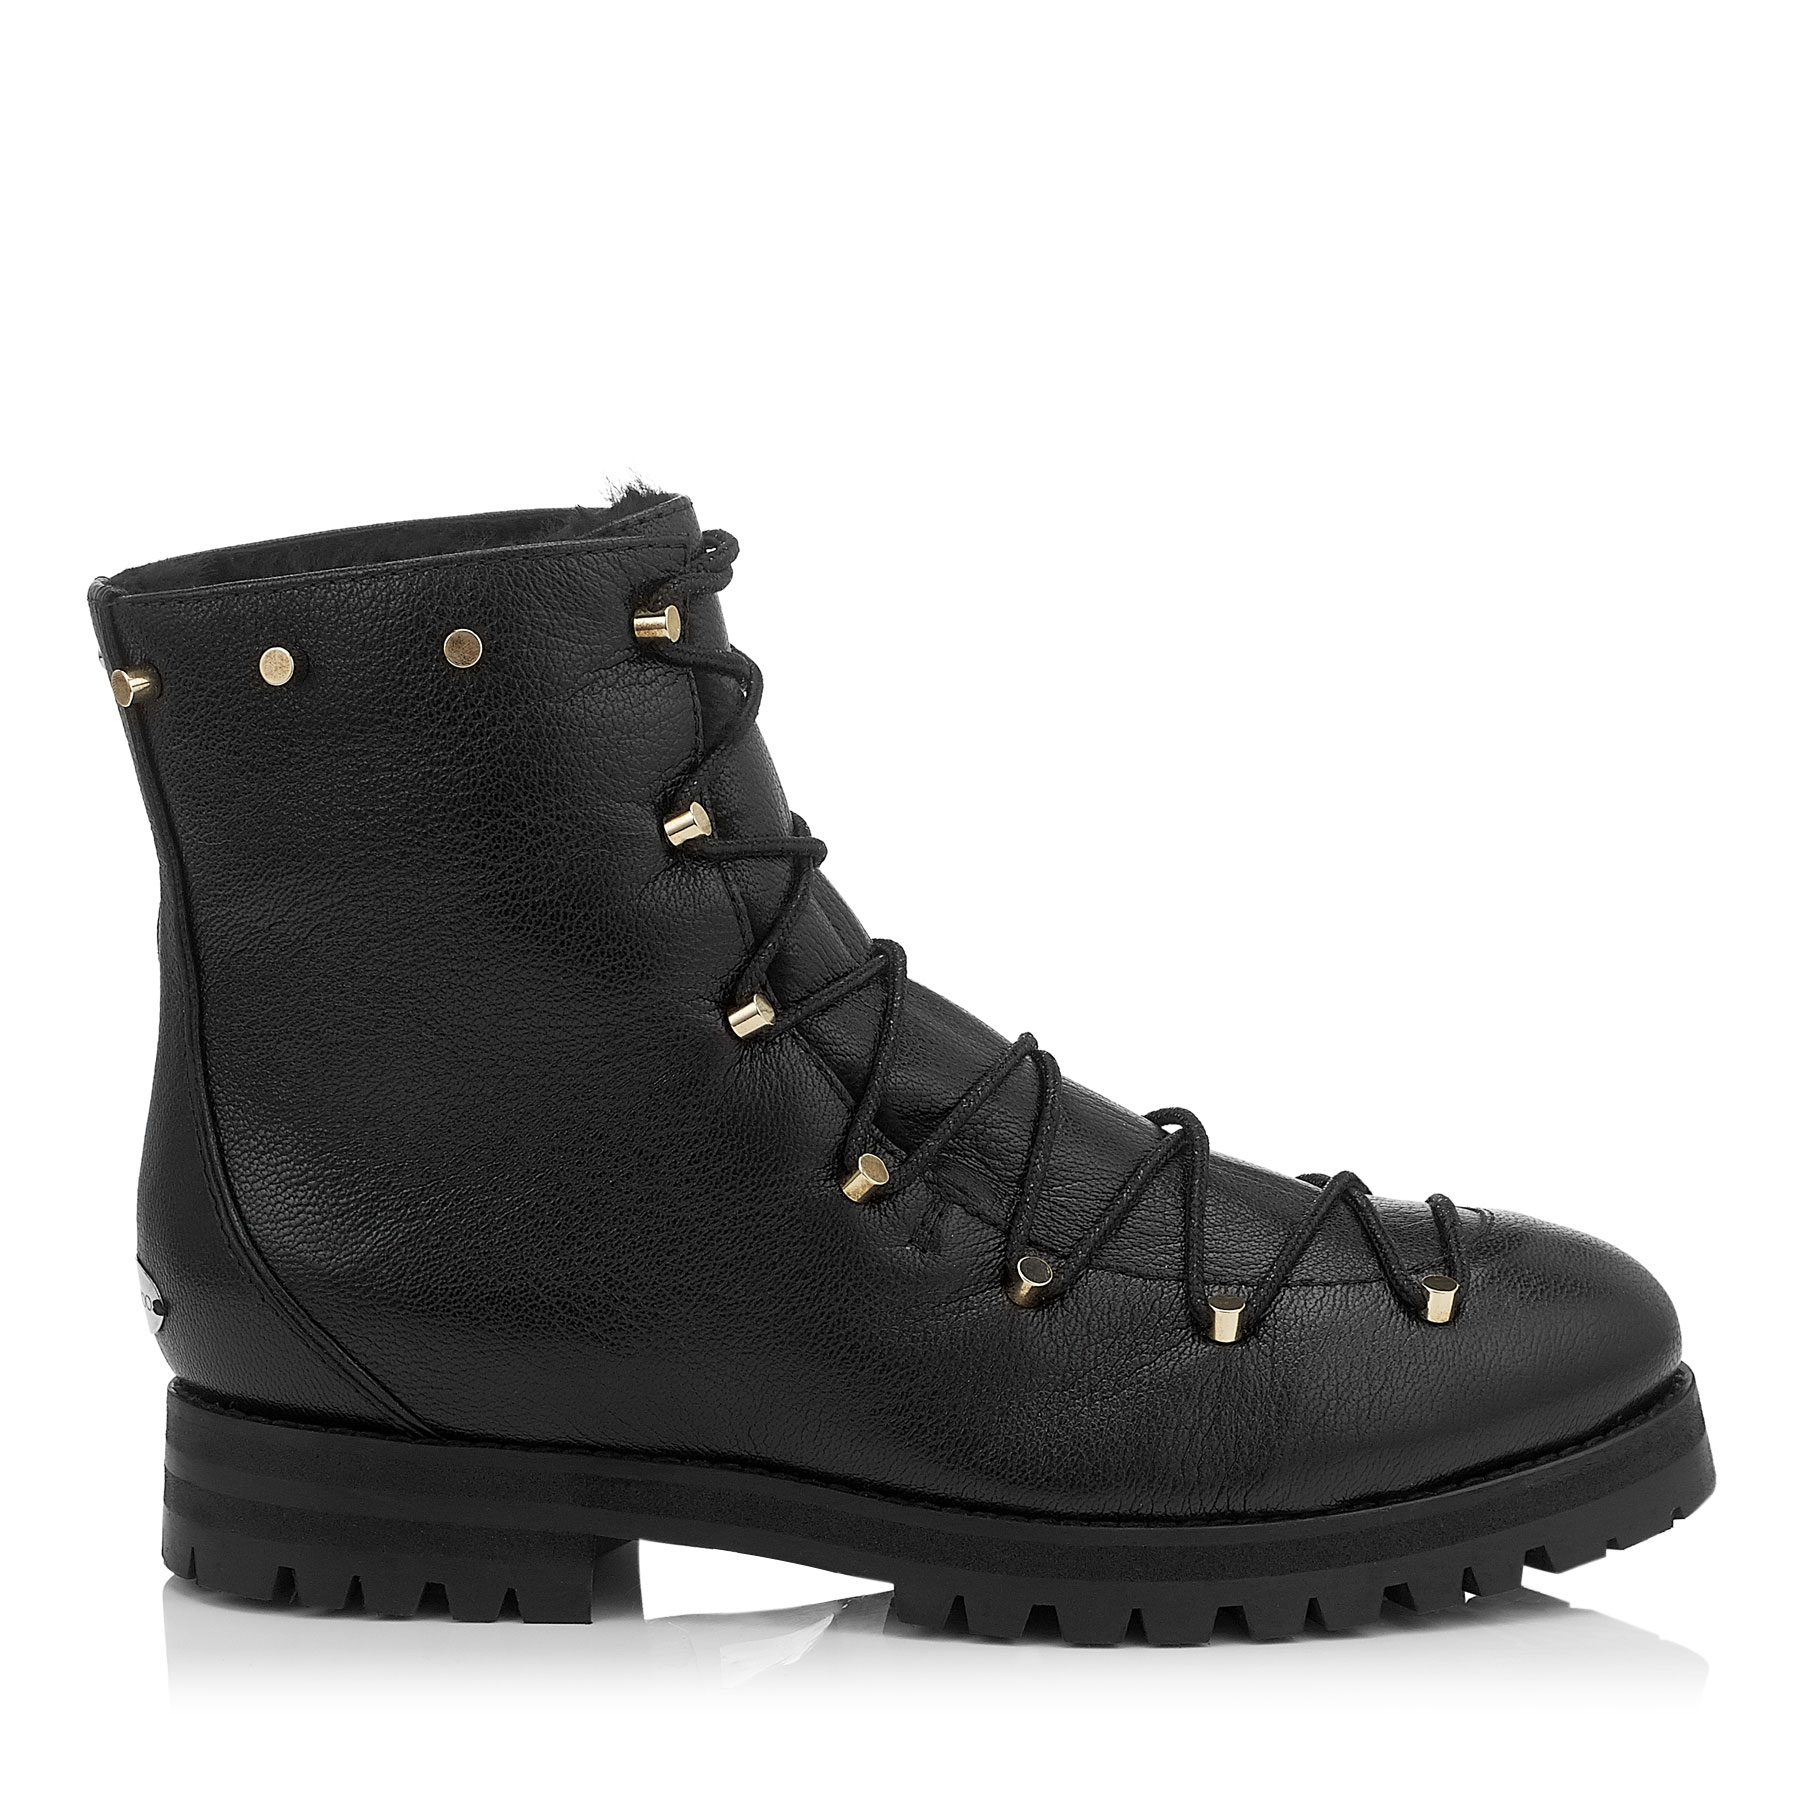 DRAKE FLAT Black Grainy Leather Combat Boots with Shearling Lining